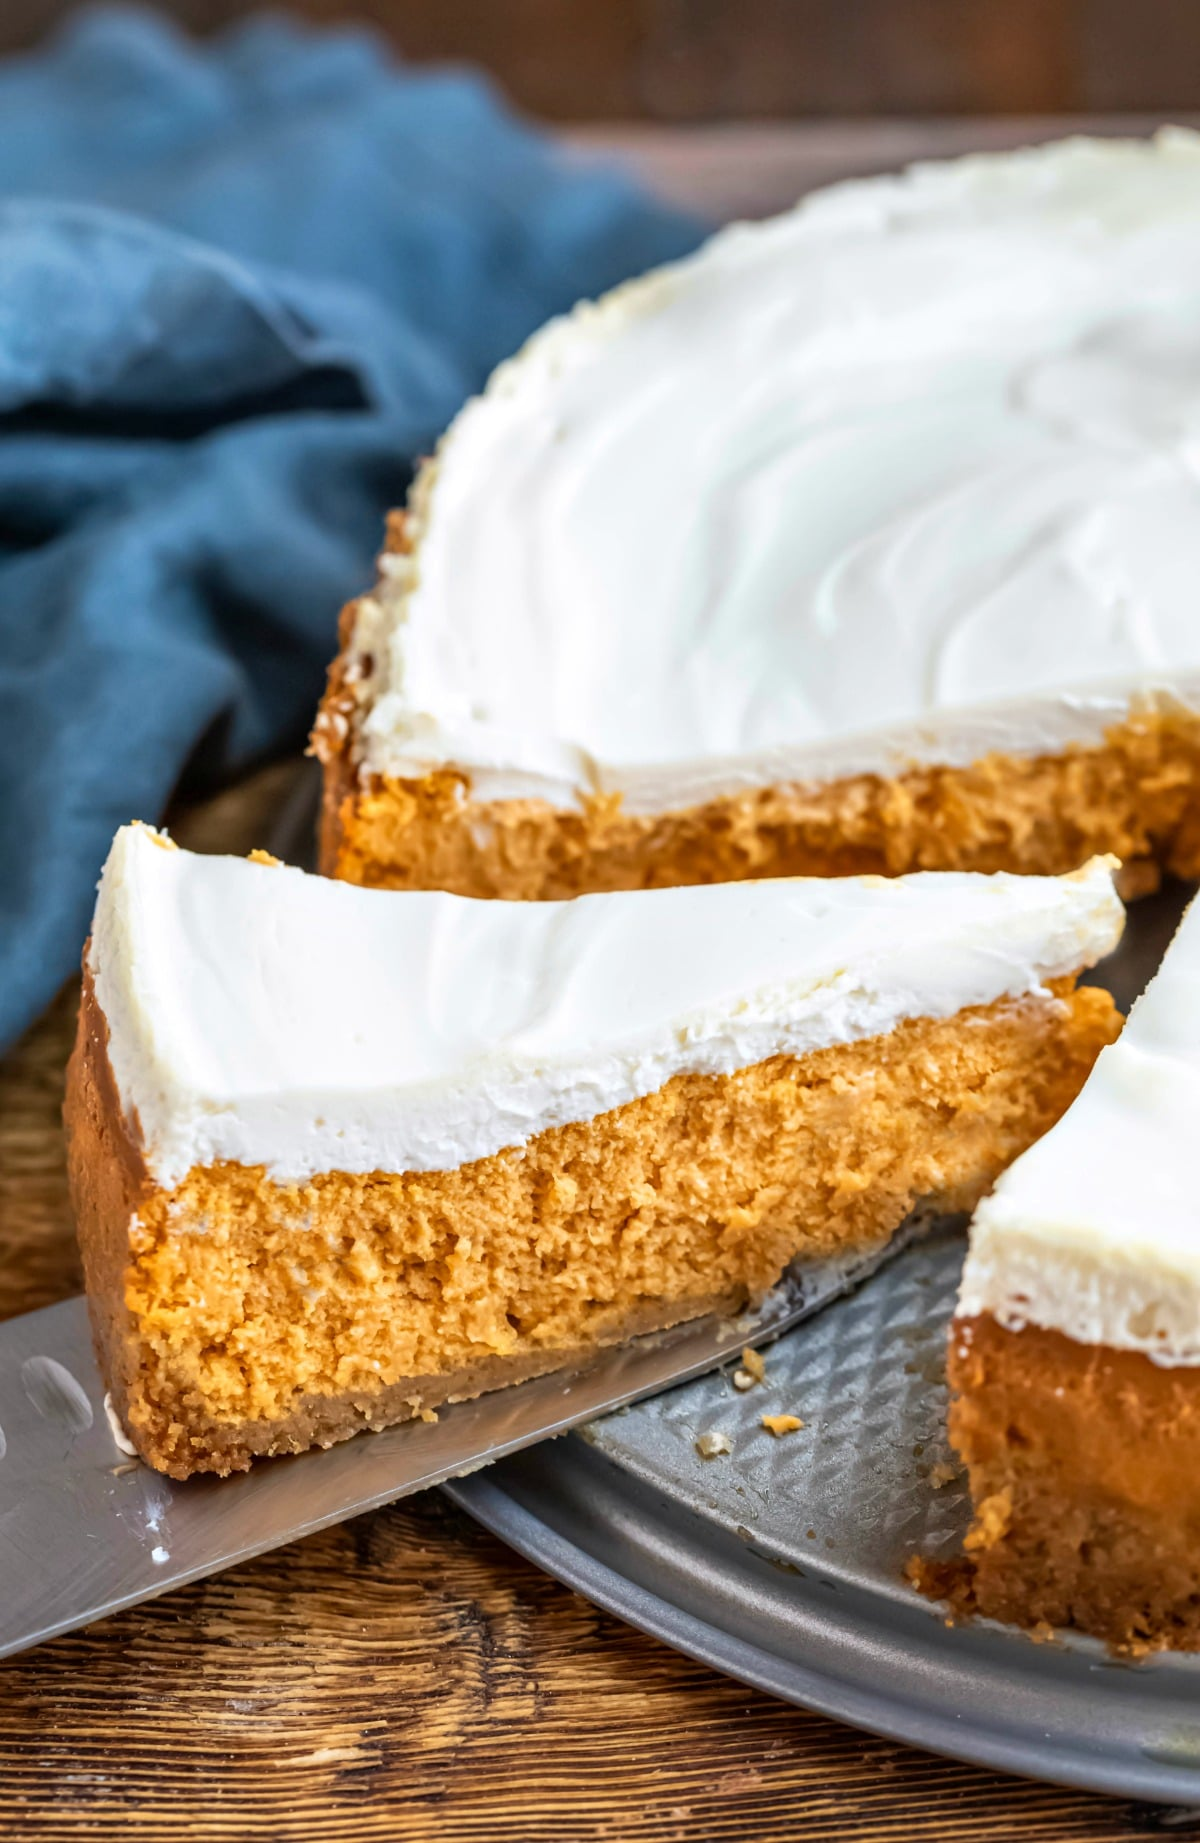 Pumpkin Cheesecake Recipe I Heart Eating